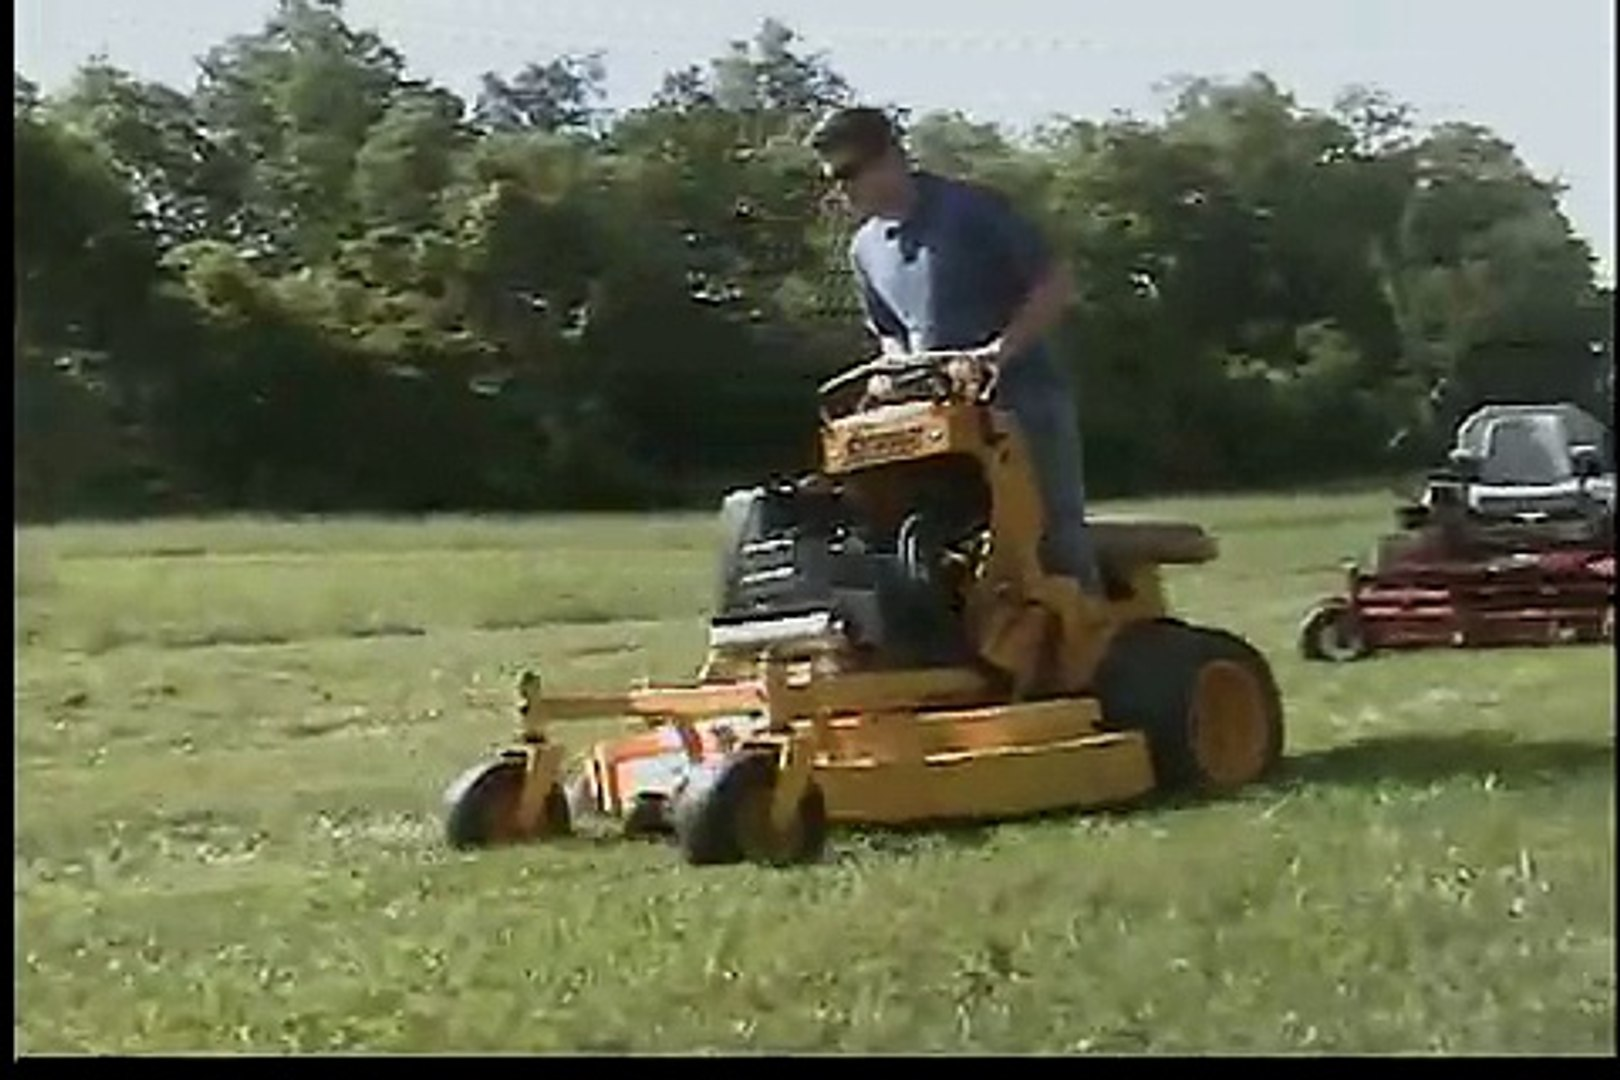 Wright 52 Sentar Commercial lawn mower 77 hours for sale on eBay!:  qualityusedequipment05